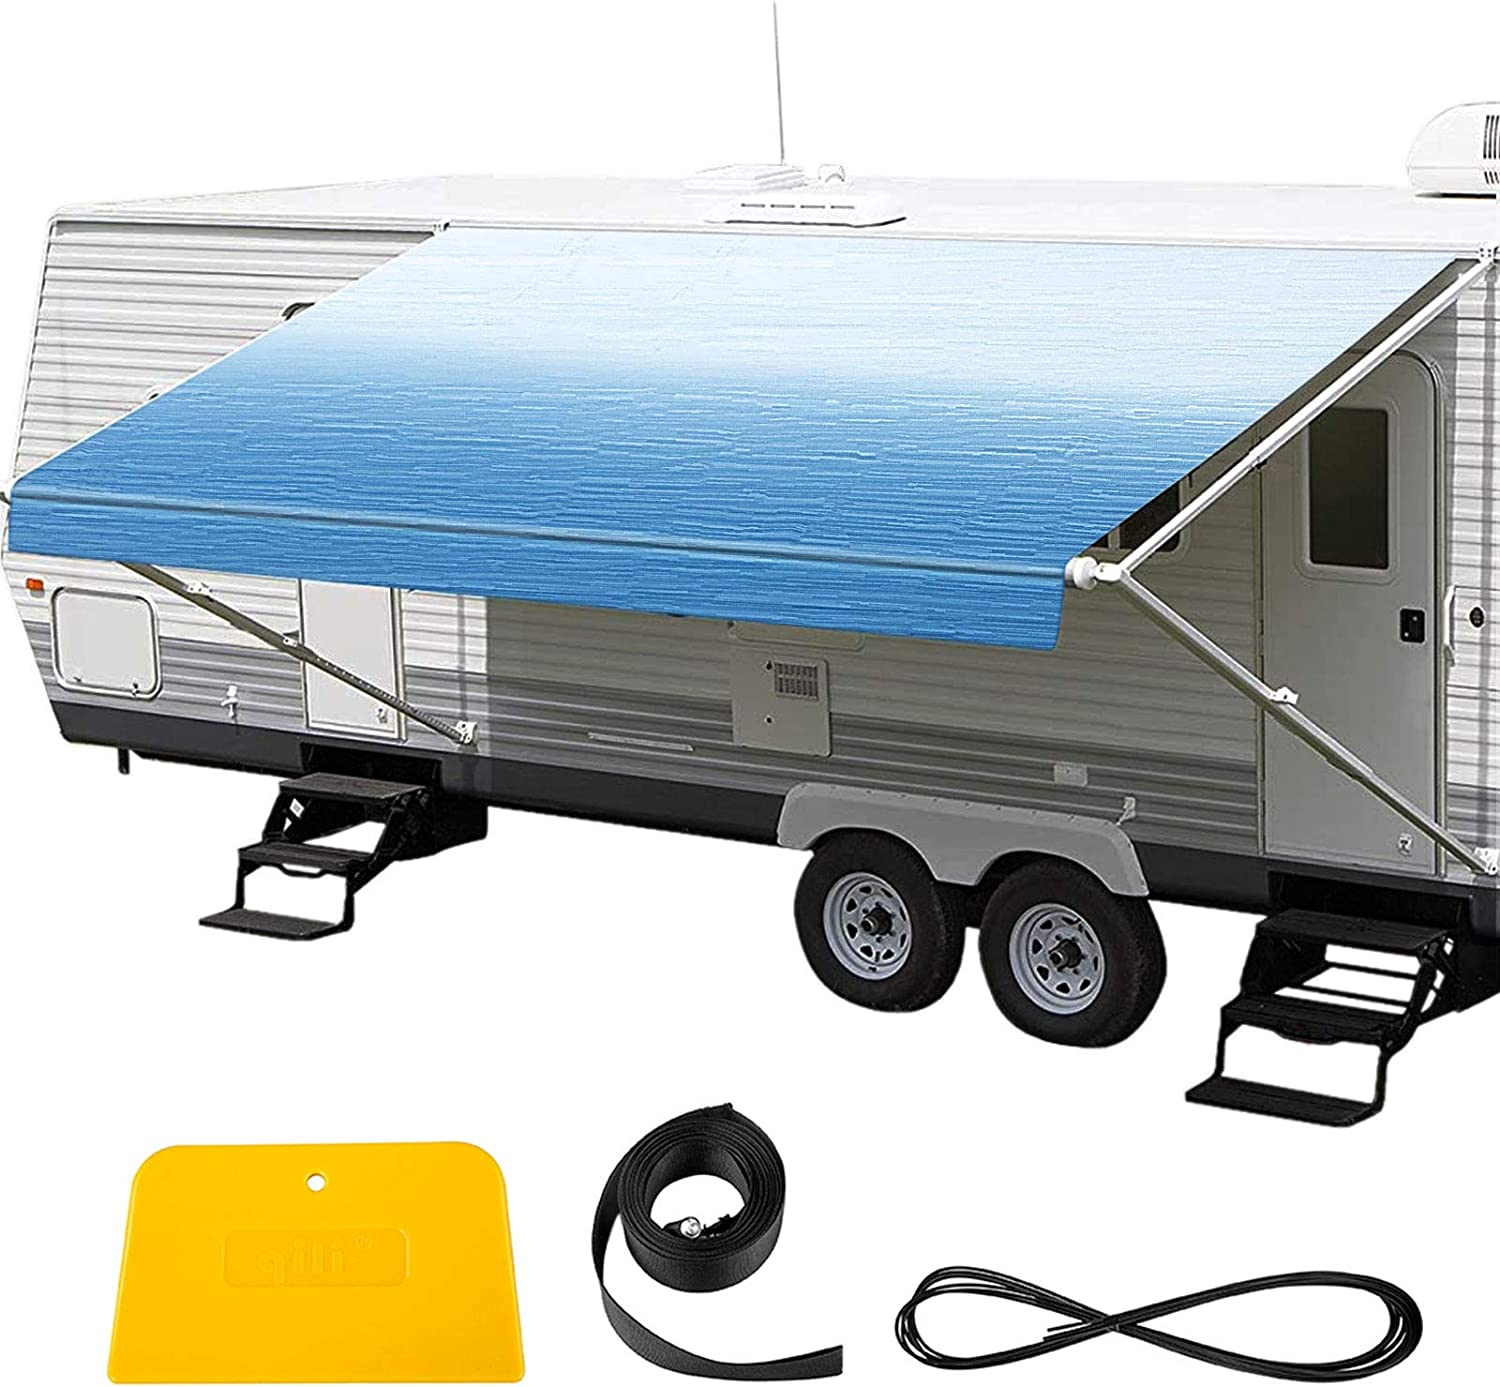 Vevor Manual Slide-Out Awning